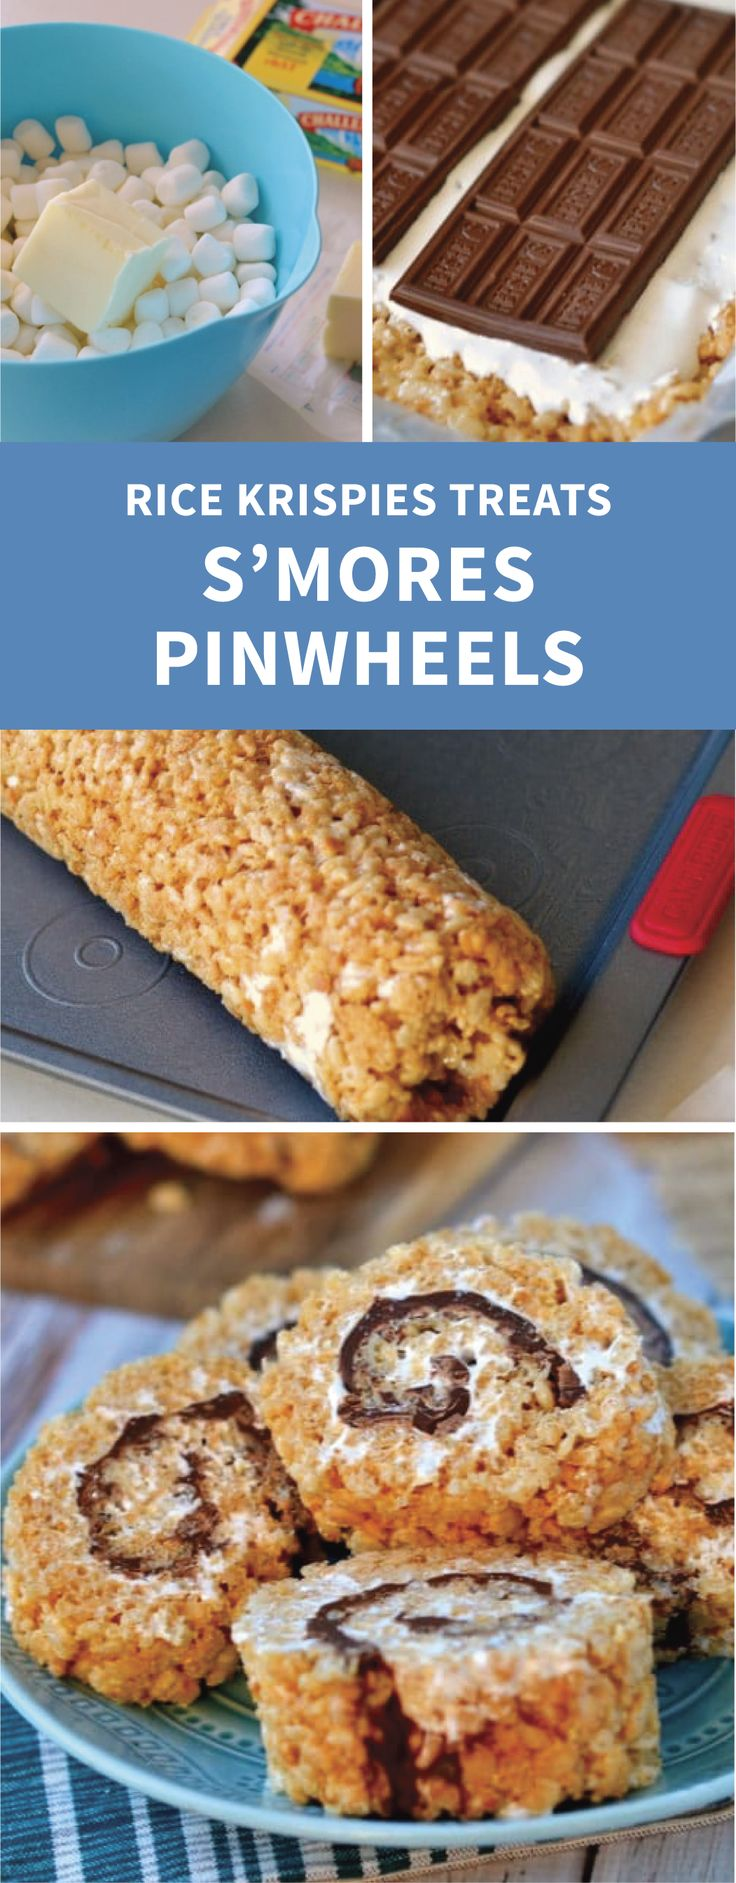 Looking for a bite-sized dessert that you can bring to parties to share with friends and family? Check out these S'mores Rice Krispies Treats® Pinwheels. Roll layers of chocolate, graham crackers, and marshmallow cream in crispy, crunchy Rice Krispies® cereal to create this easy no-bake recipe.